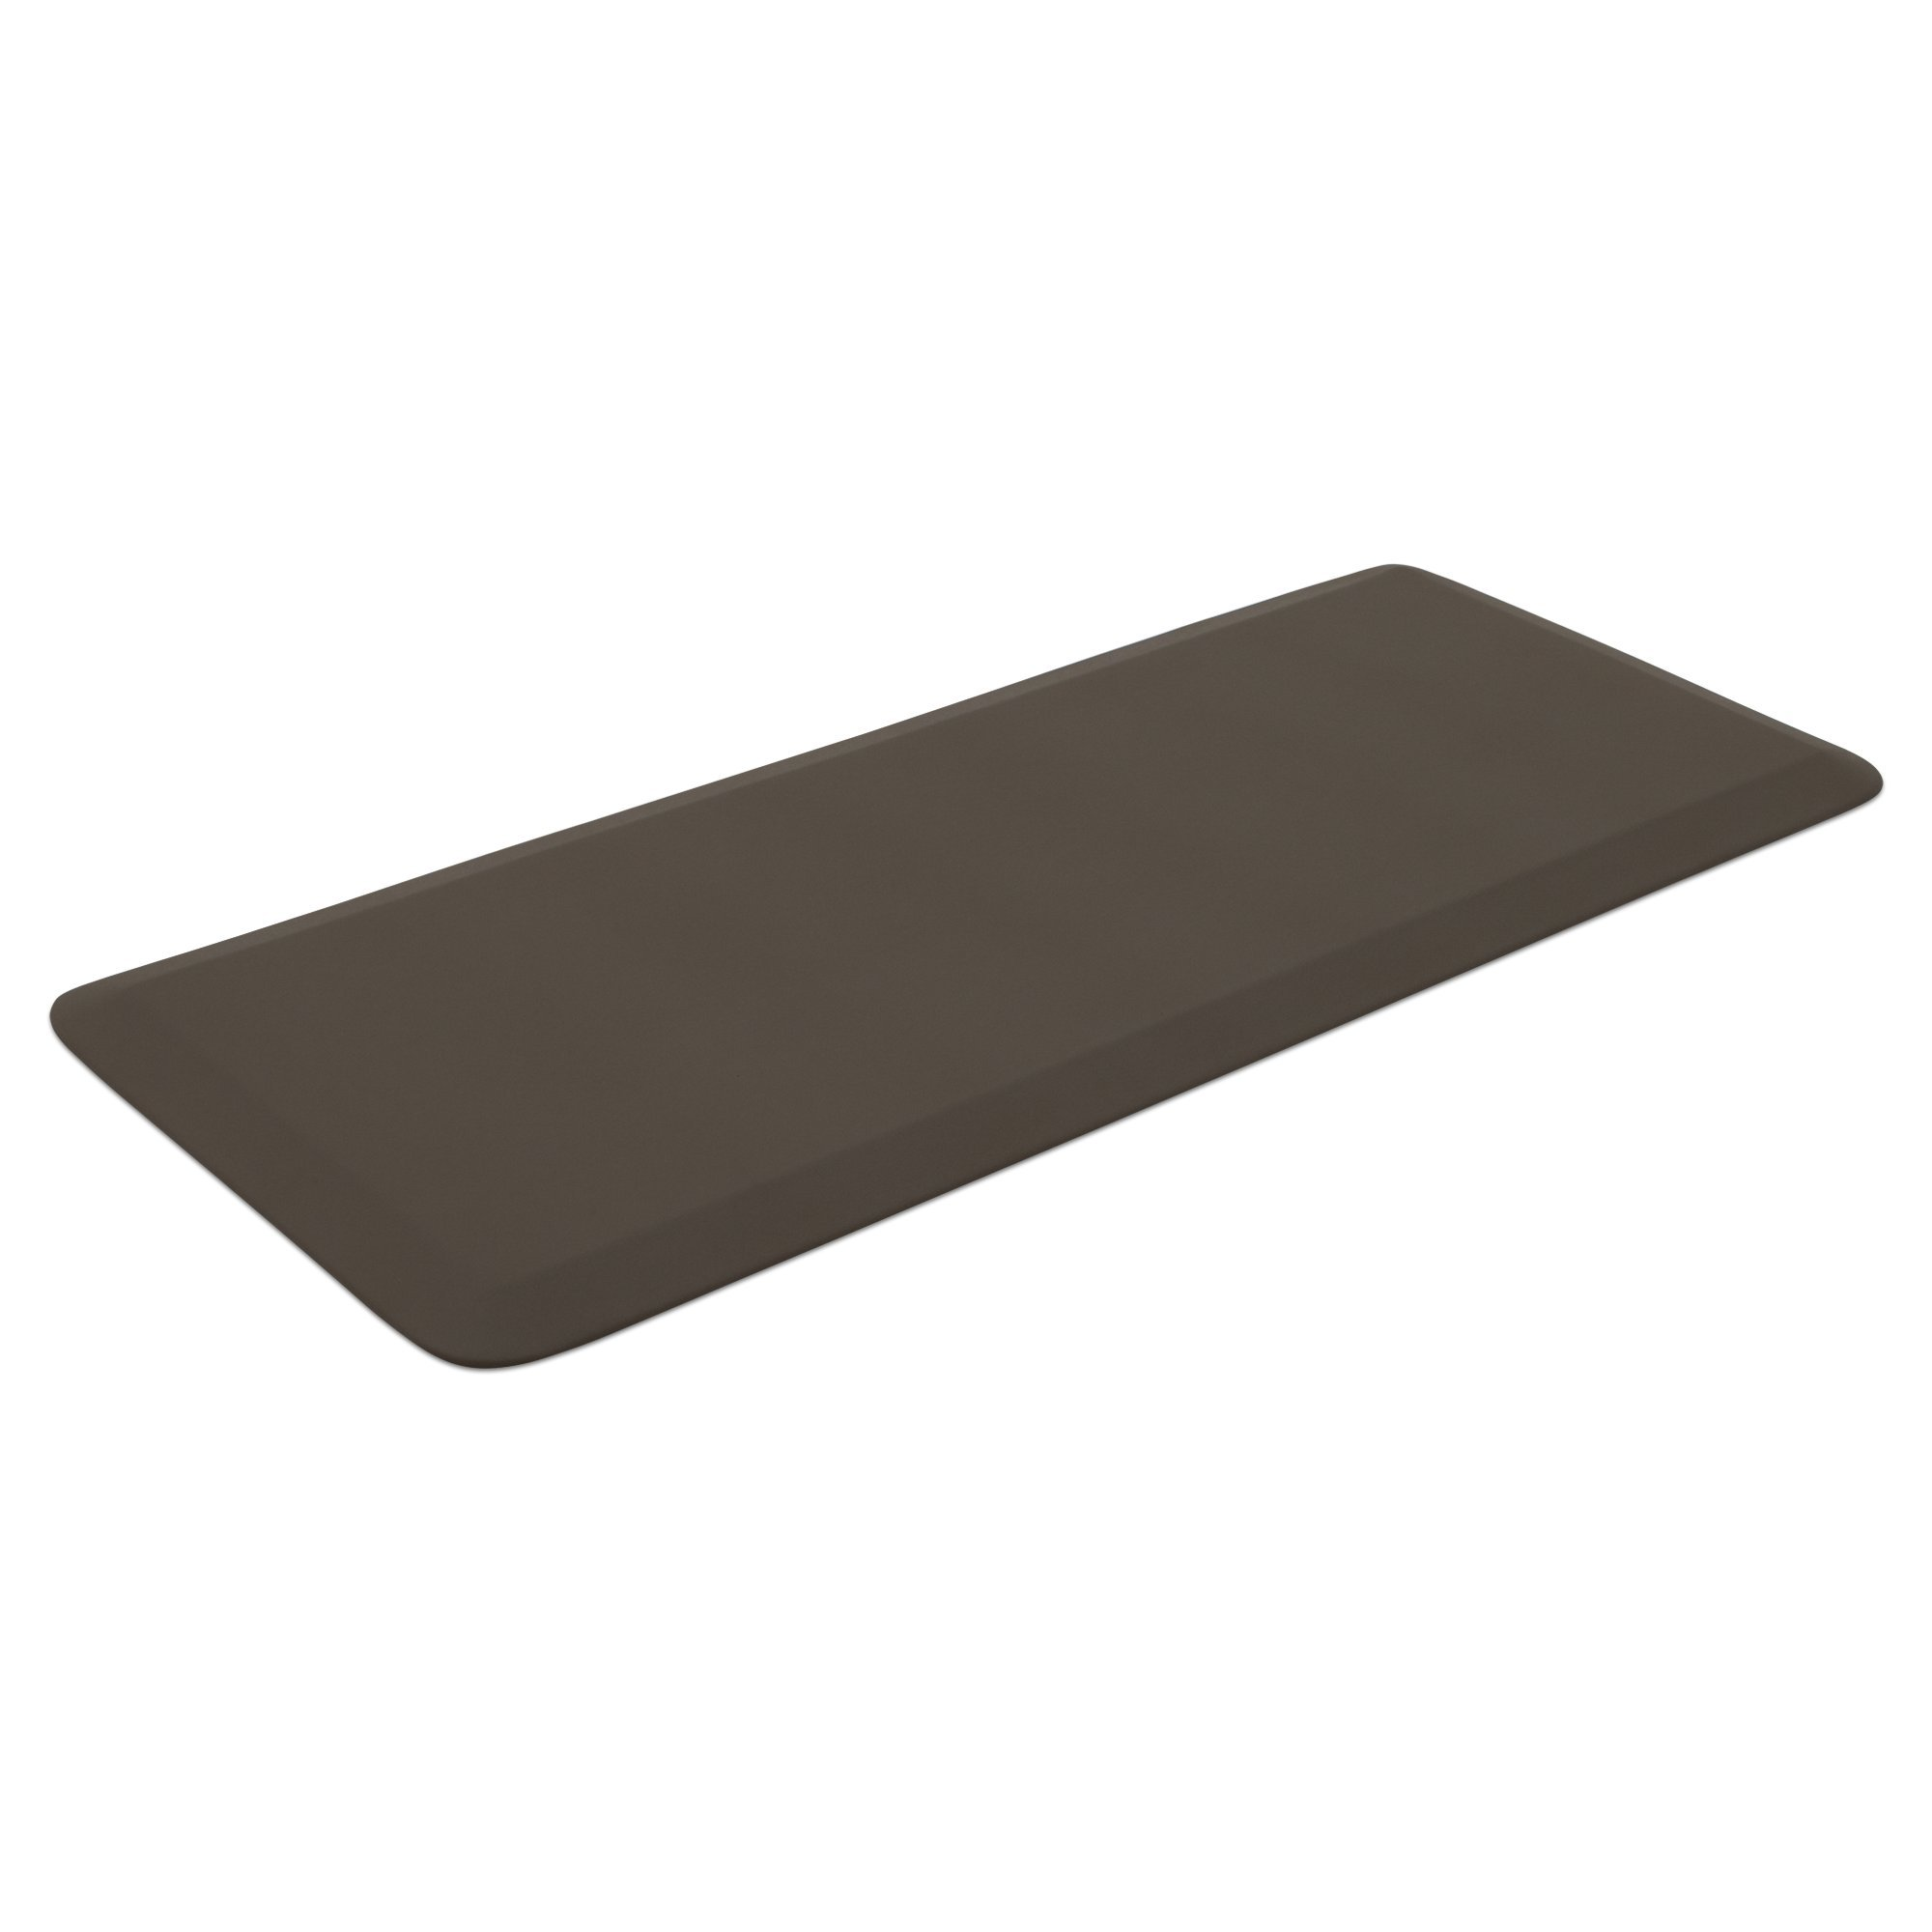 "NewLife by GelPro Professional Grade Anti-Fatigue Kitchen & Office Comfort Mat, 20x48, Stone ¾"" Bio-Foam Mat with non-slip bottom for health & wellness by NewLife by GelPro (Image #2)"